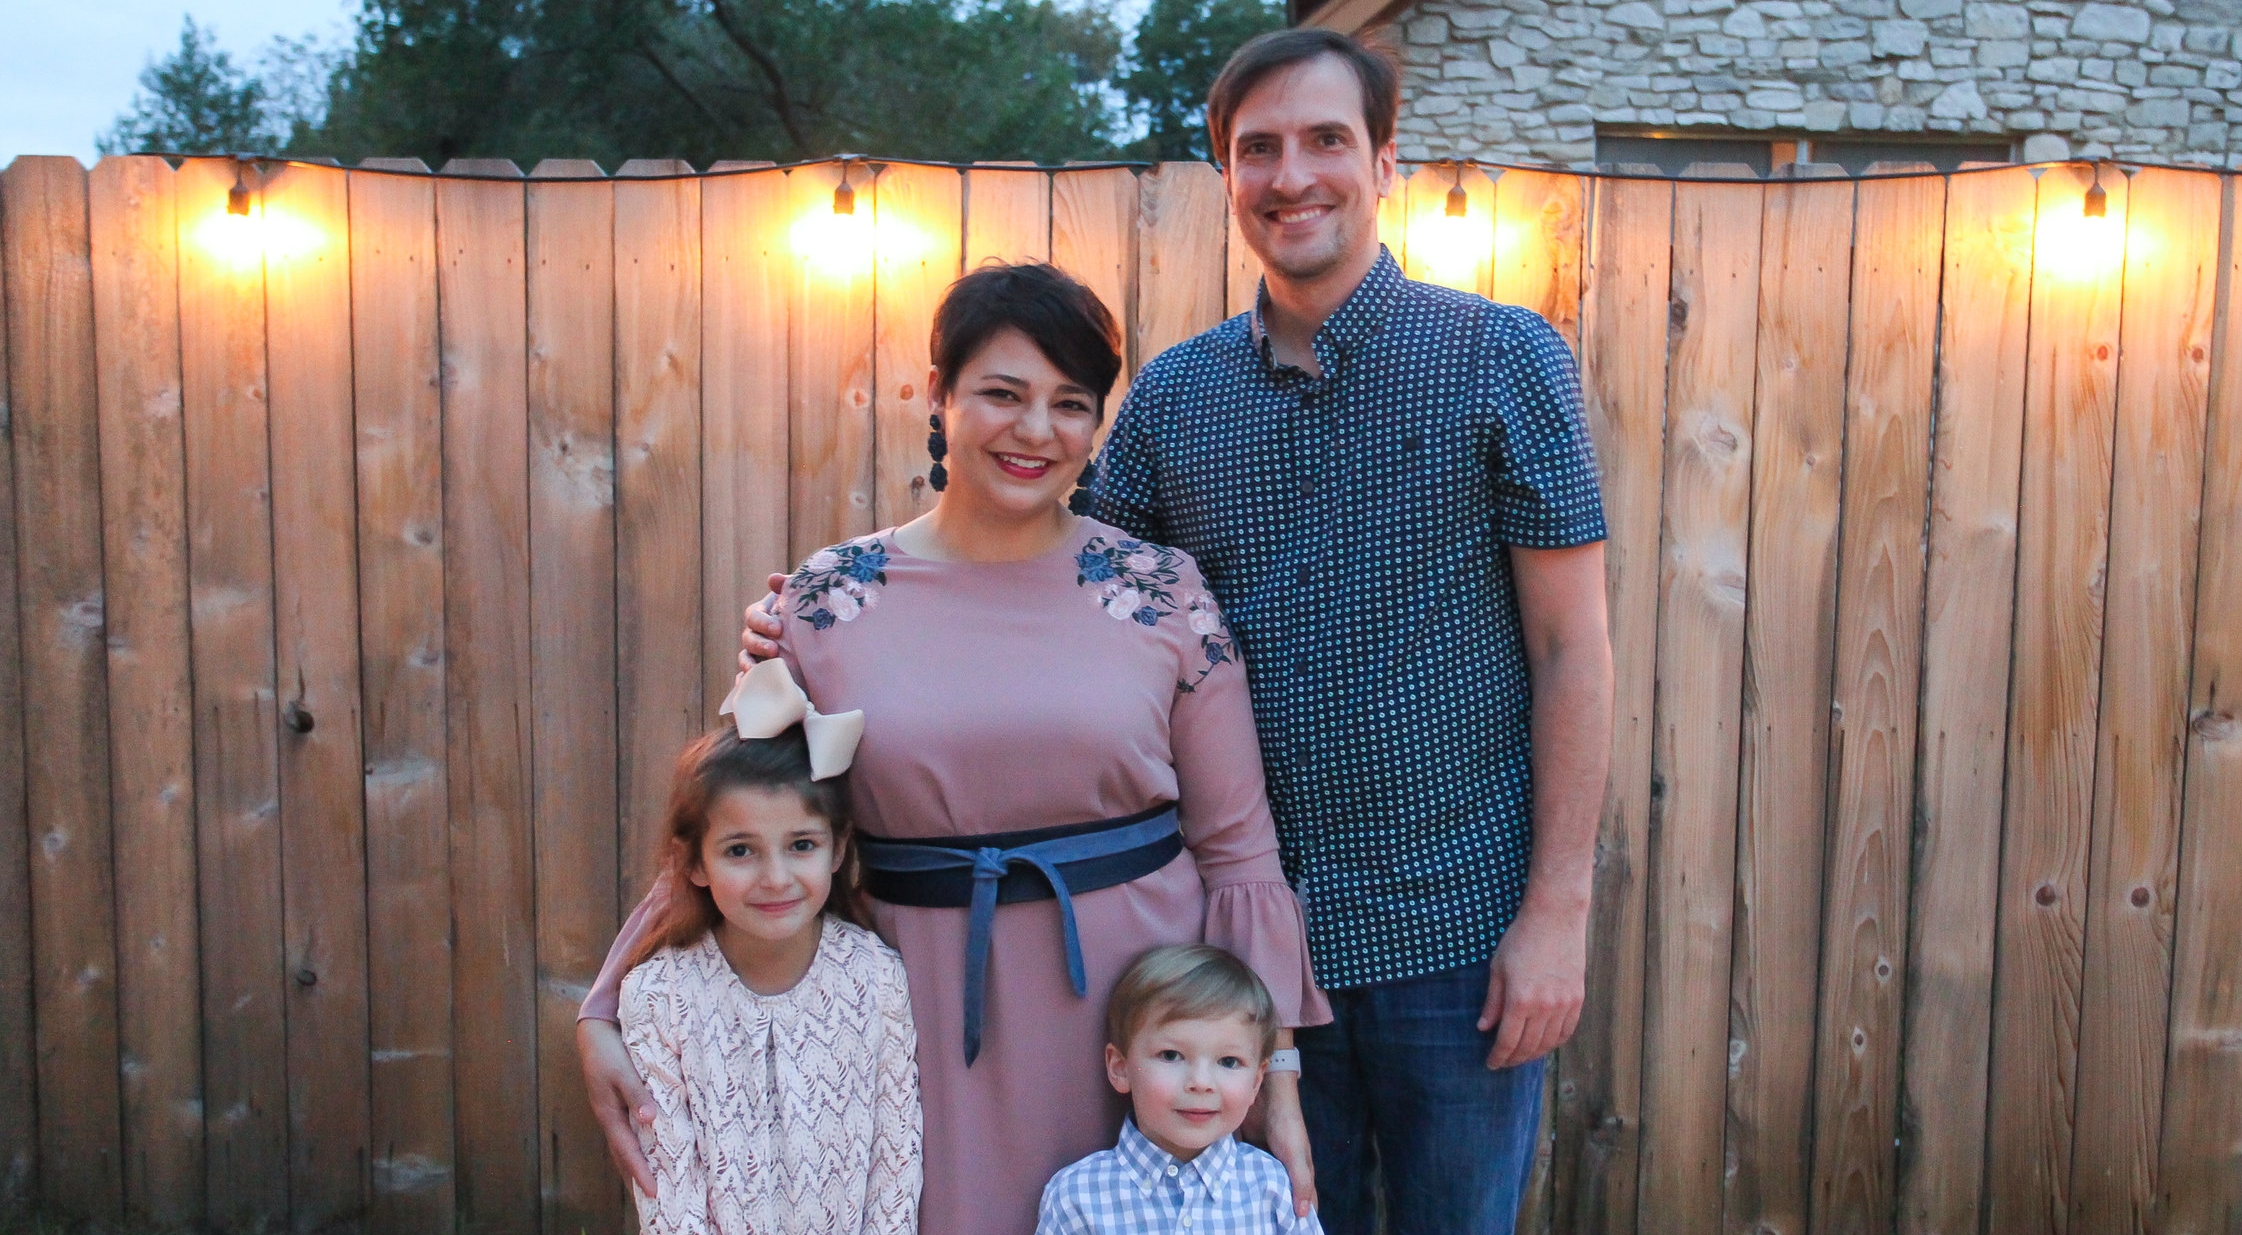 Celina with her Husband Luke Girdley and their two children.